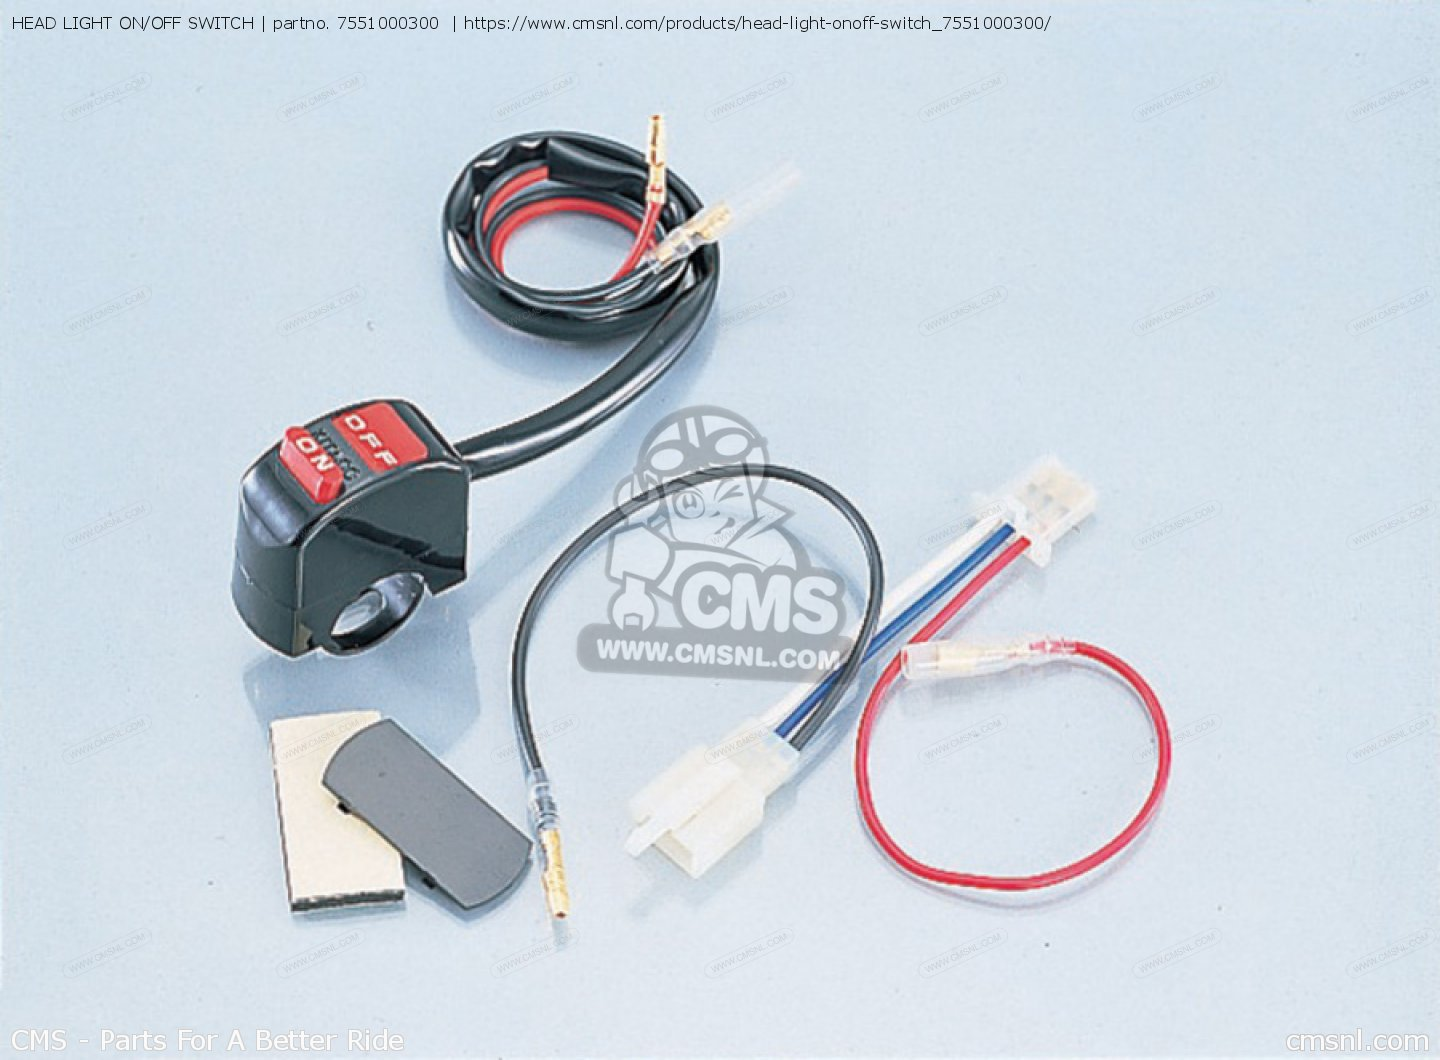 7551000300: Head Light On/off Switch Kitaco - buy the 755-1000300 at ...